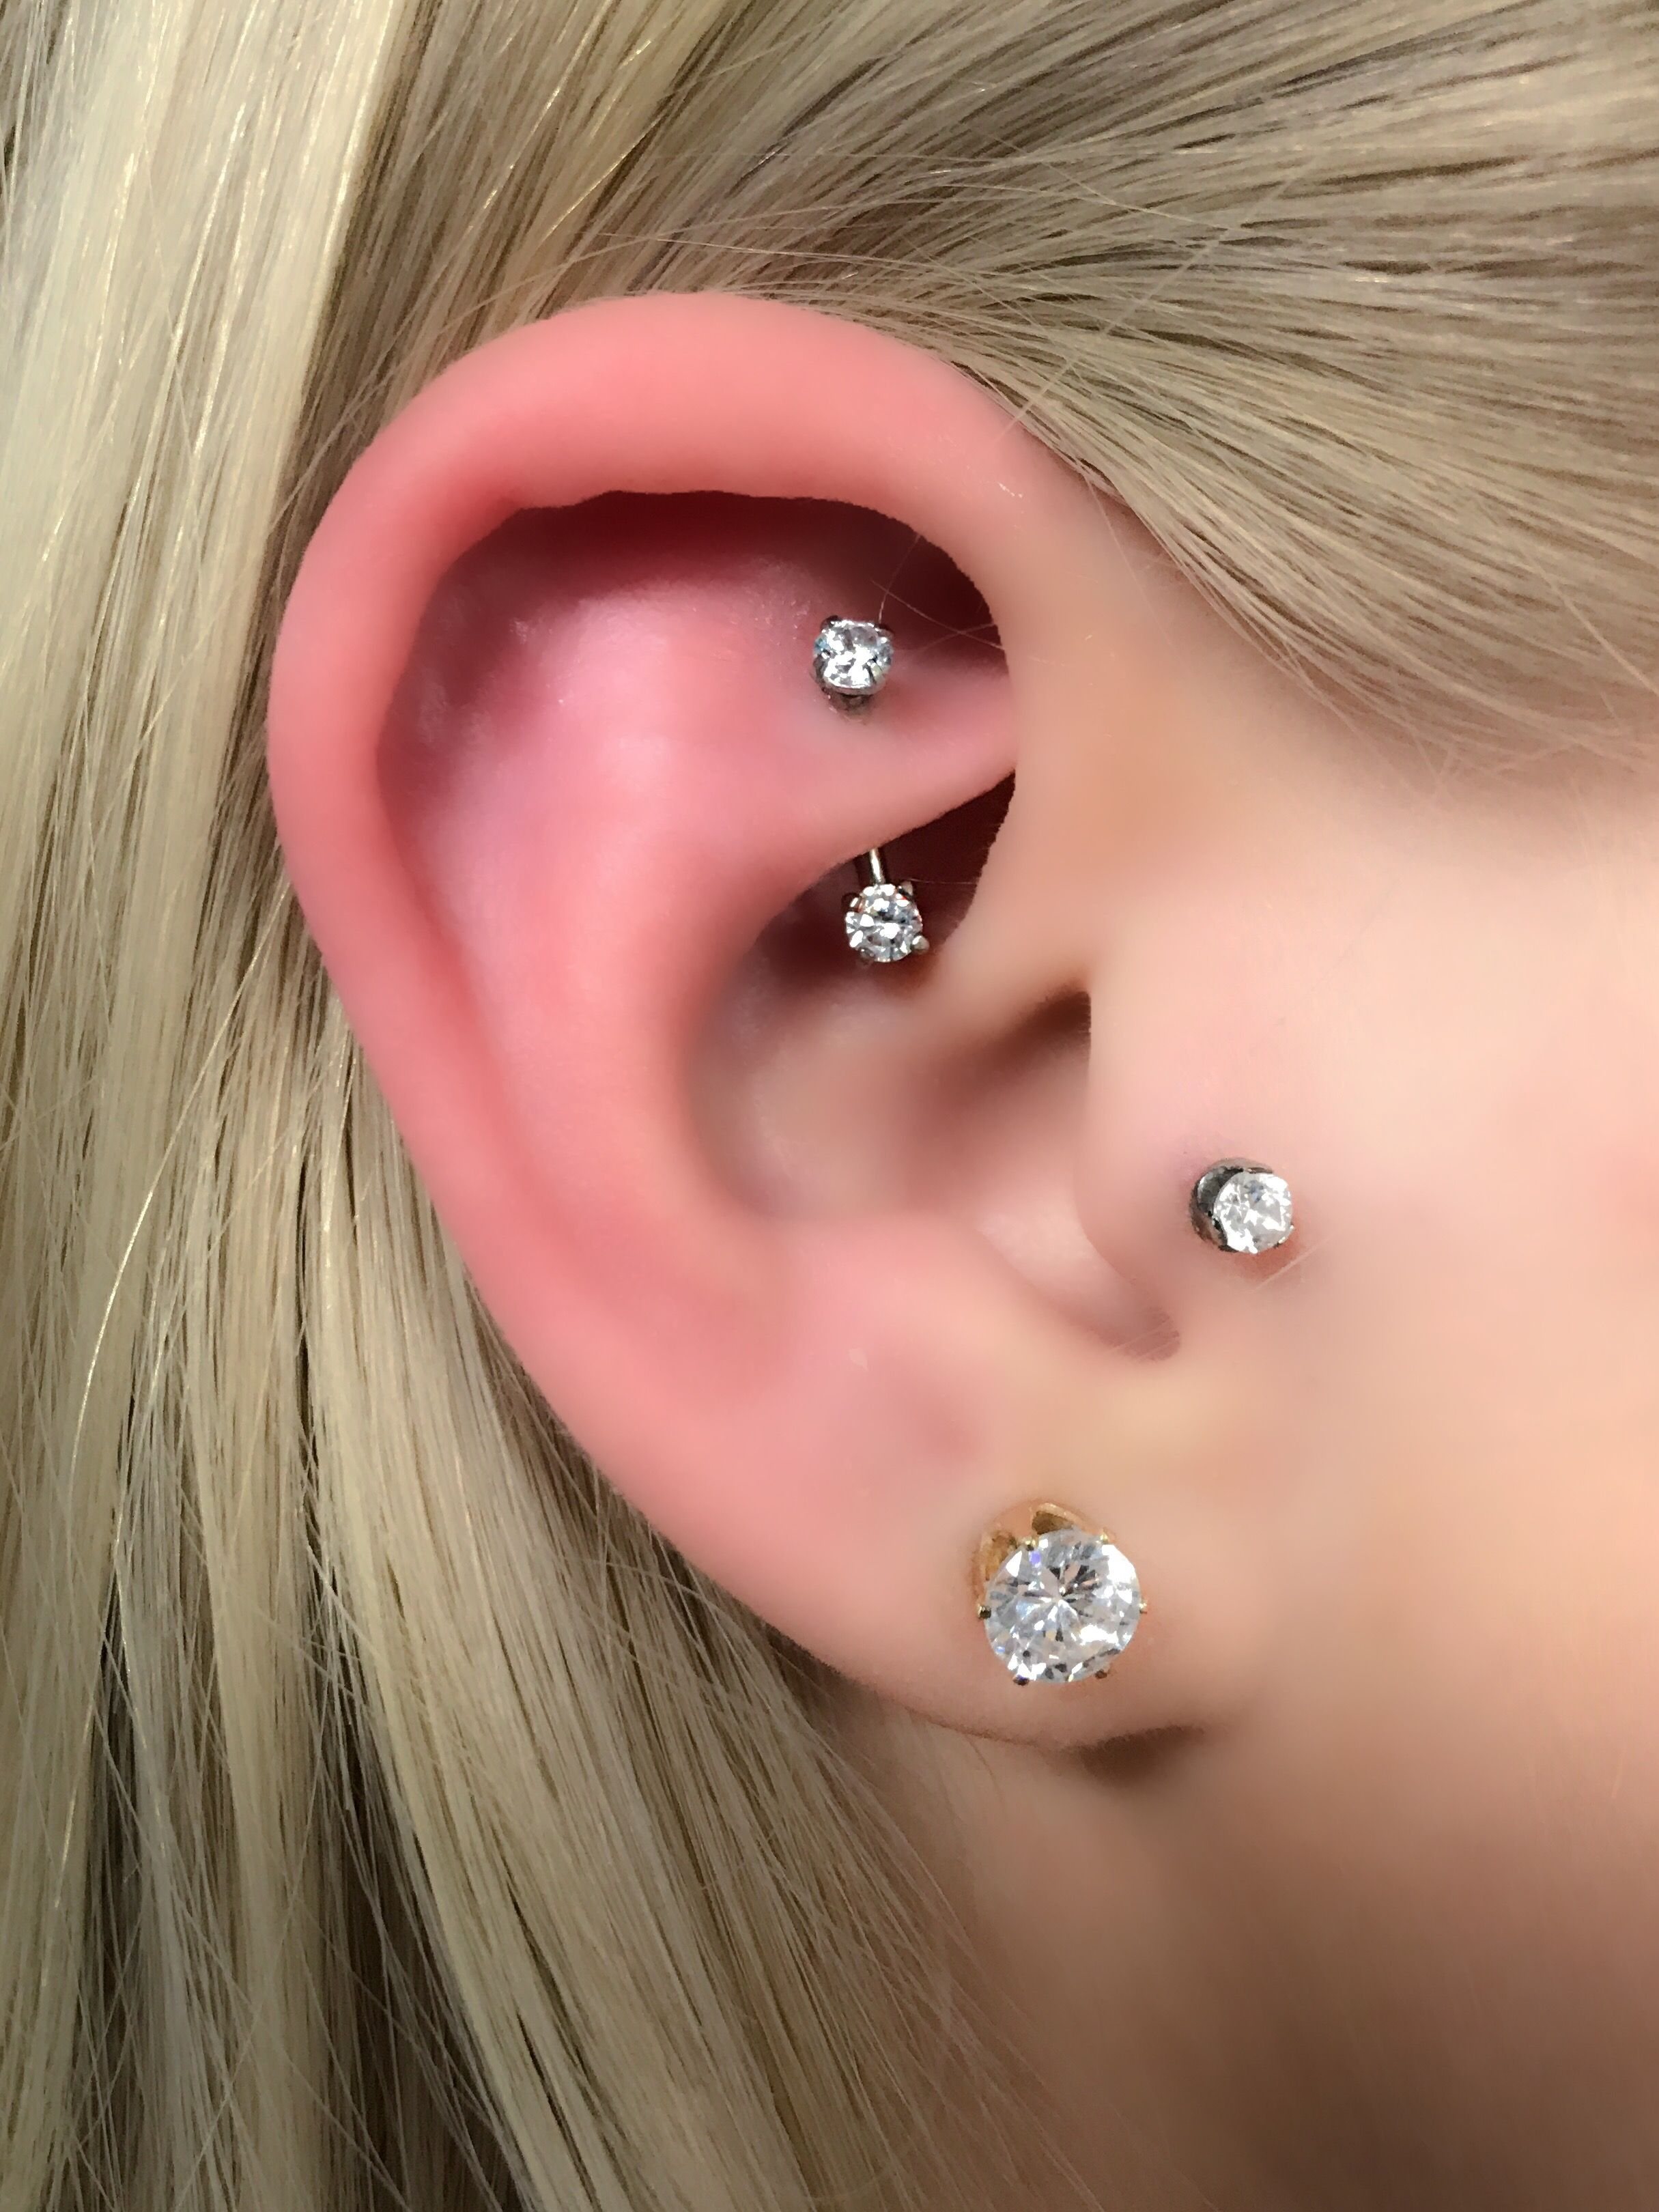 Names for cartilage piercing  Pin by Jessica Winkler on Jewelry  Pinterest  Piercings Piercing